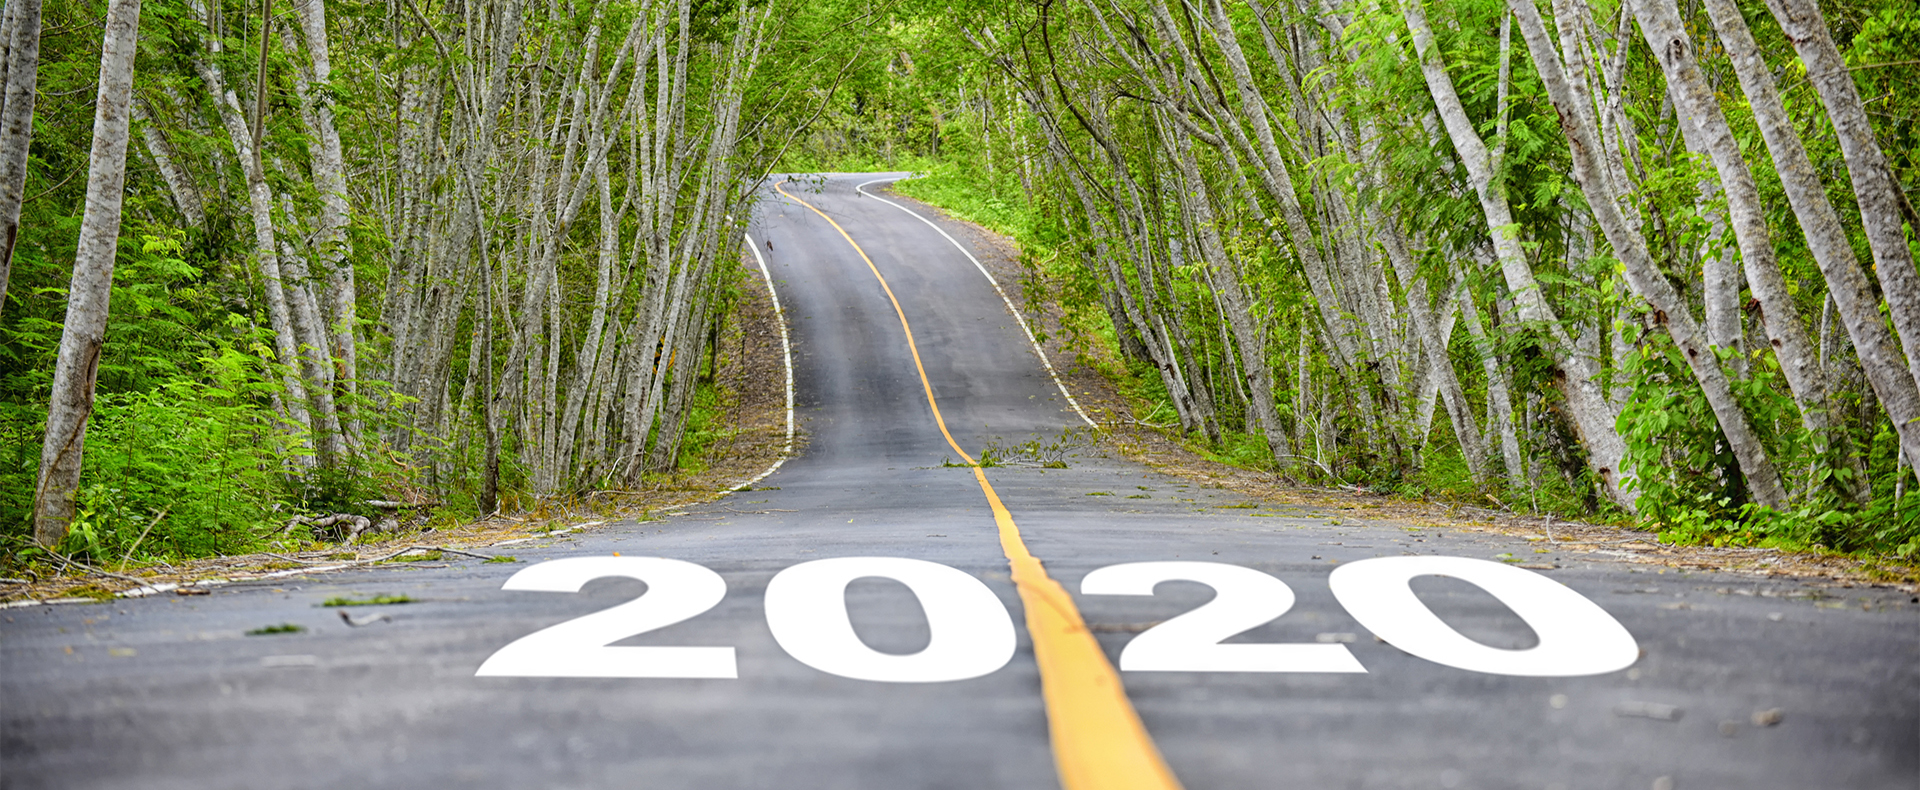 Road with trees and 2020 painted on road